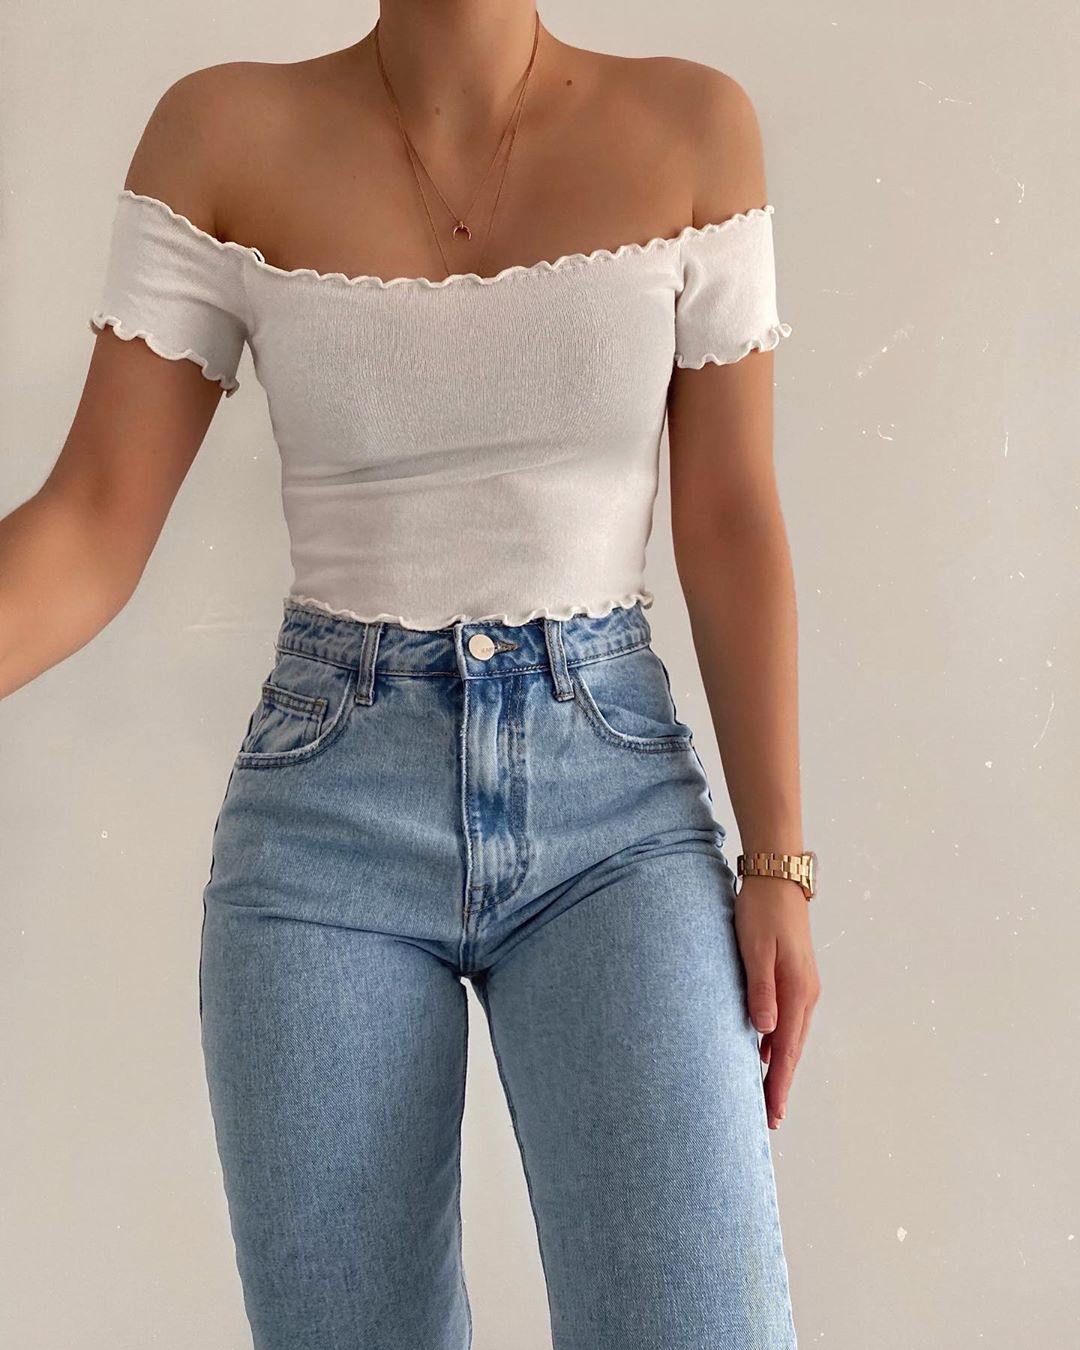 15 Under-$100 Off-the-Shoulder Tops to Wear Now